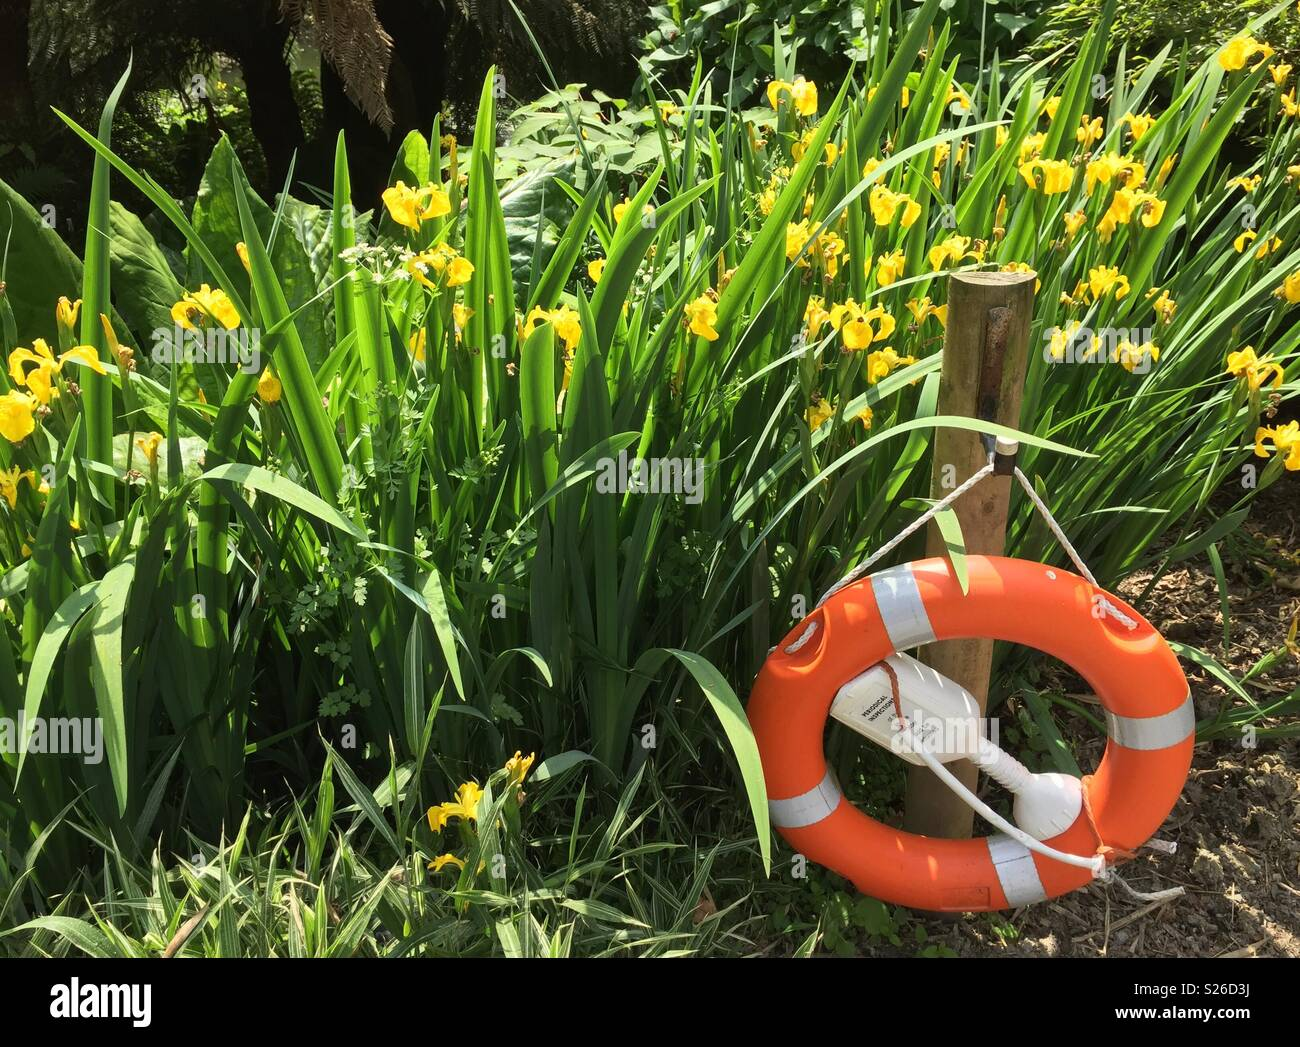 Beside a pond- orange and white life  saver ring and yellow flags irises - Stock Image